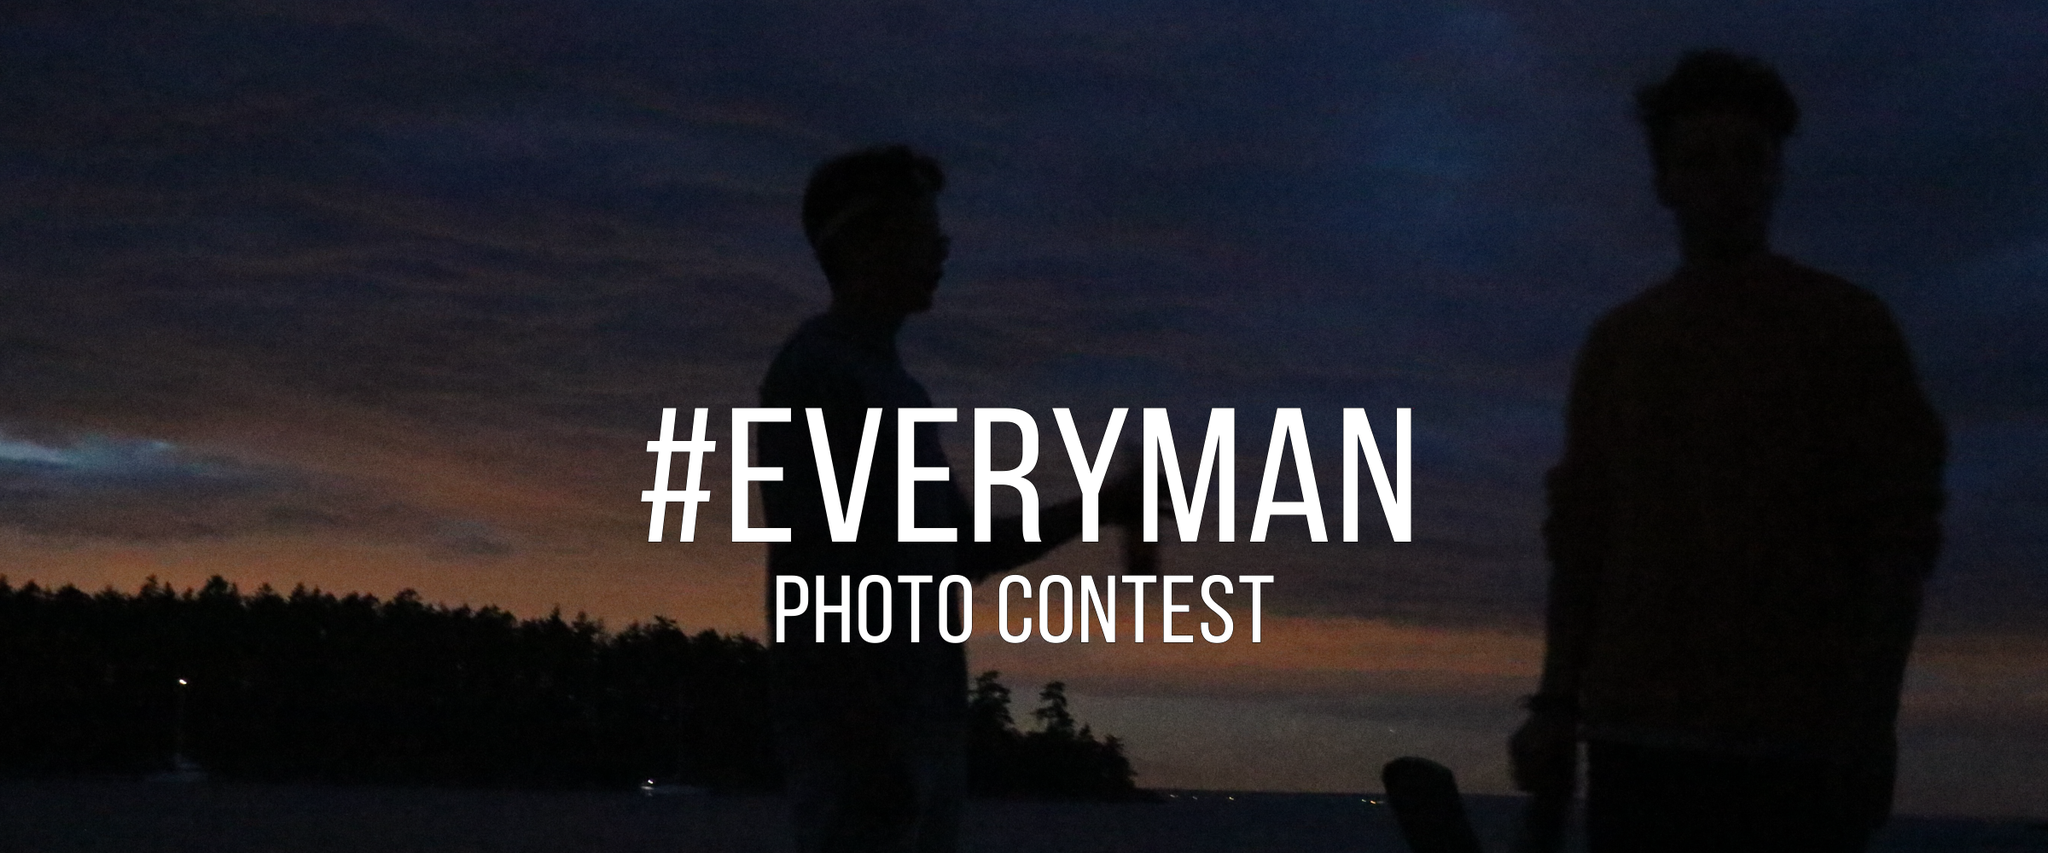 #everyman Instagram Photo Contest